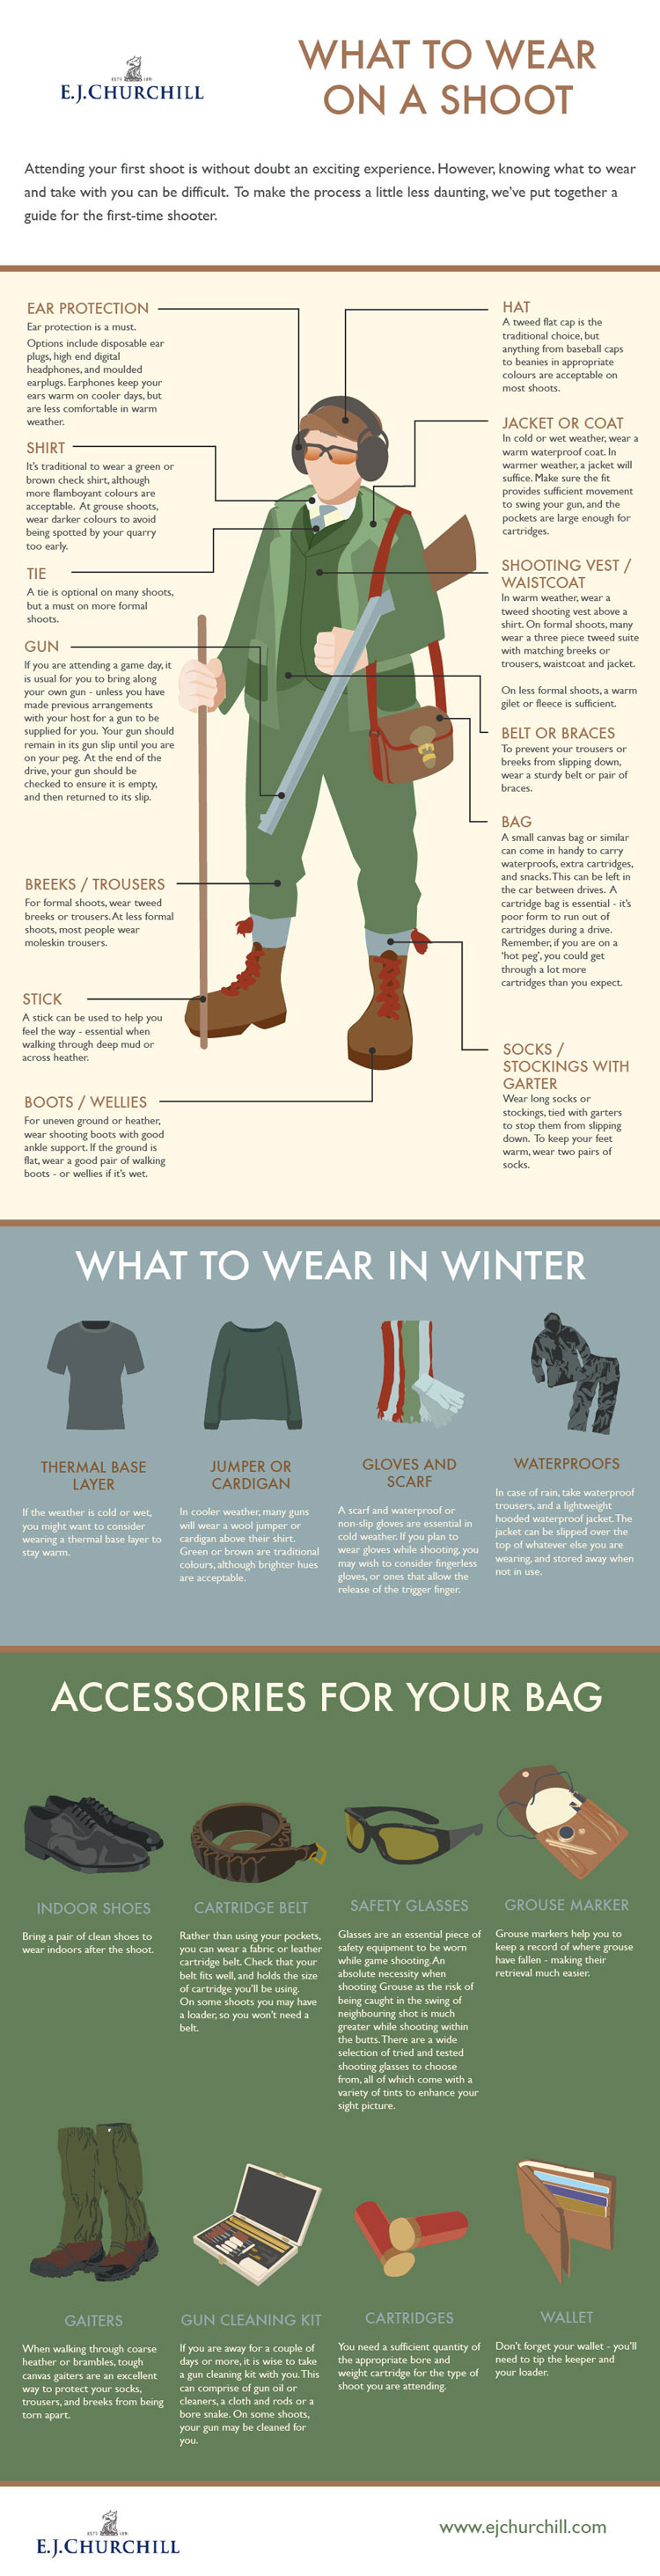 What to Wear Game Shooting